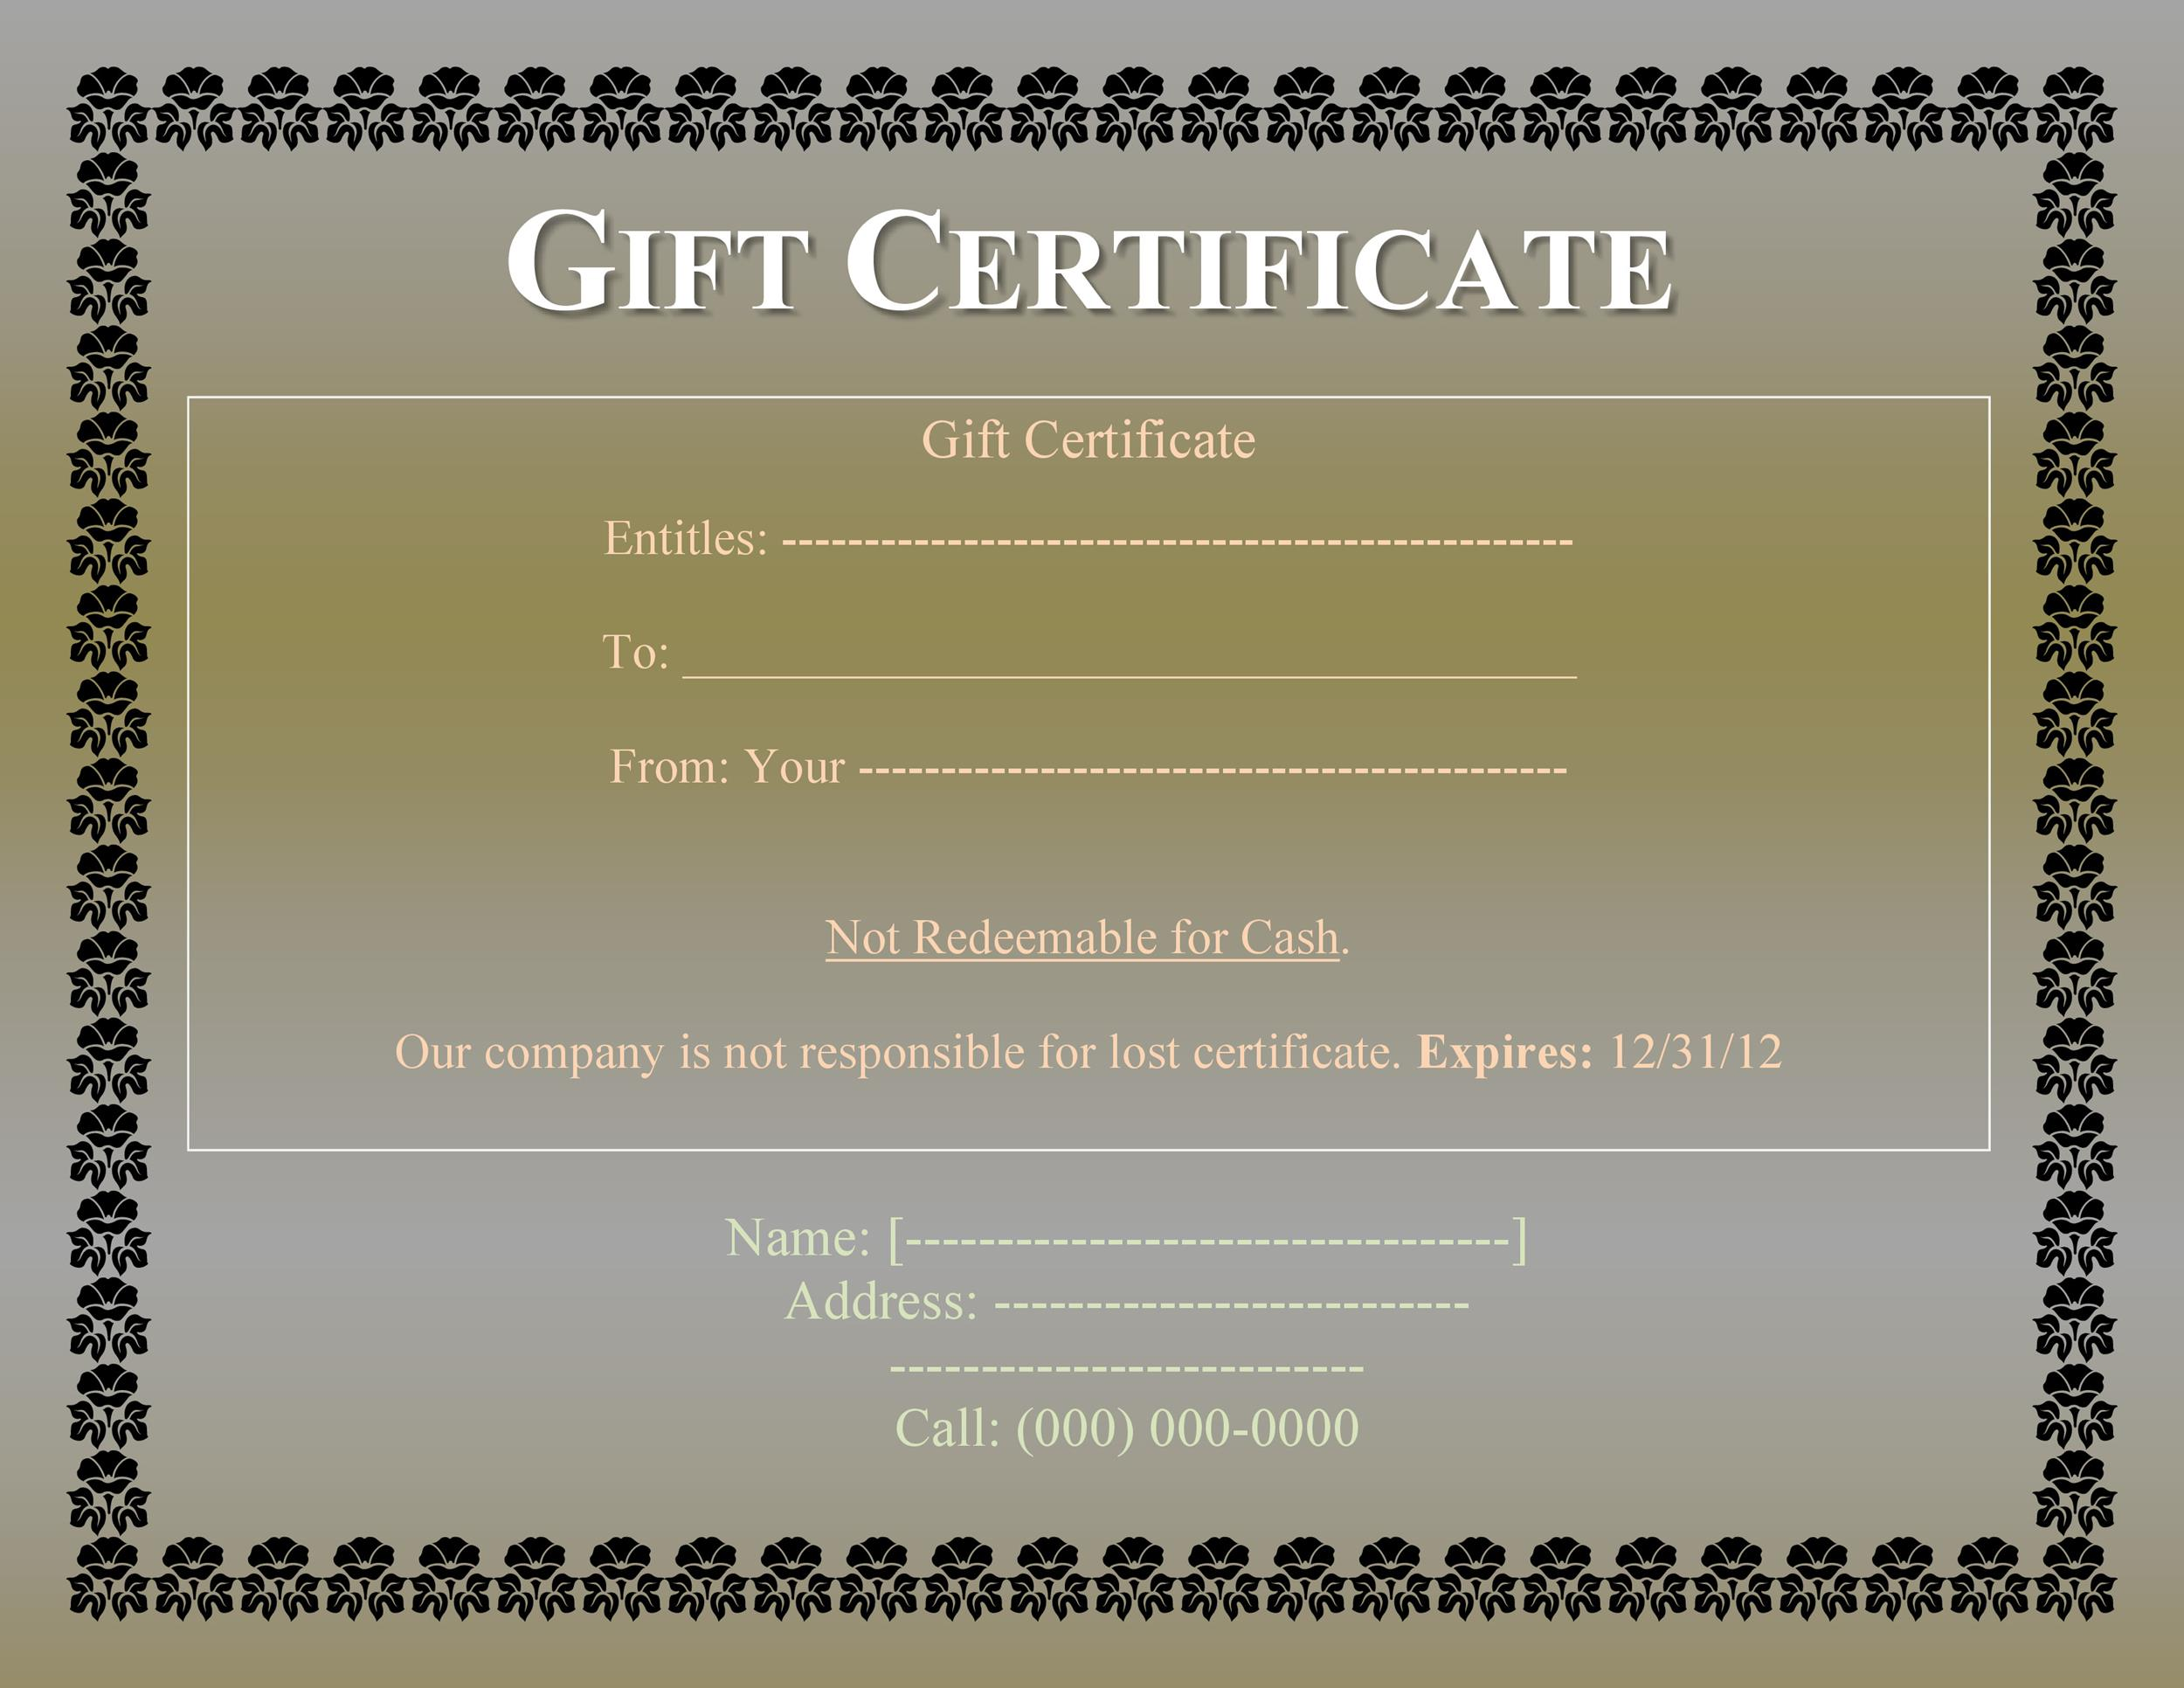 Printable Gift Certificate Template 28  Gift Certificate Download